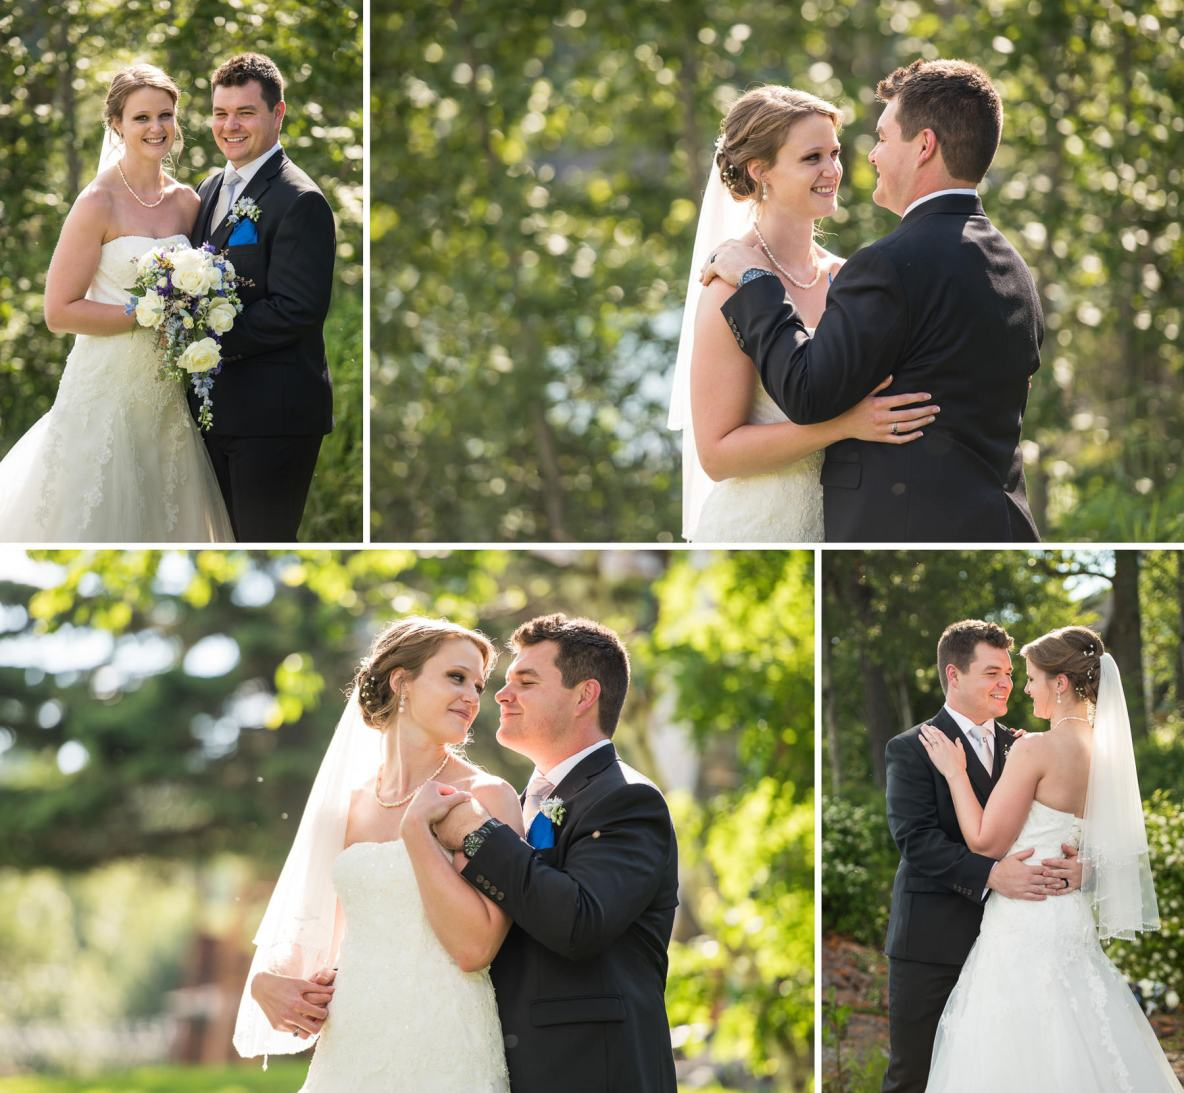 Outdoor photos of the bride and groom with green trees in the background.